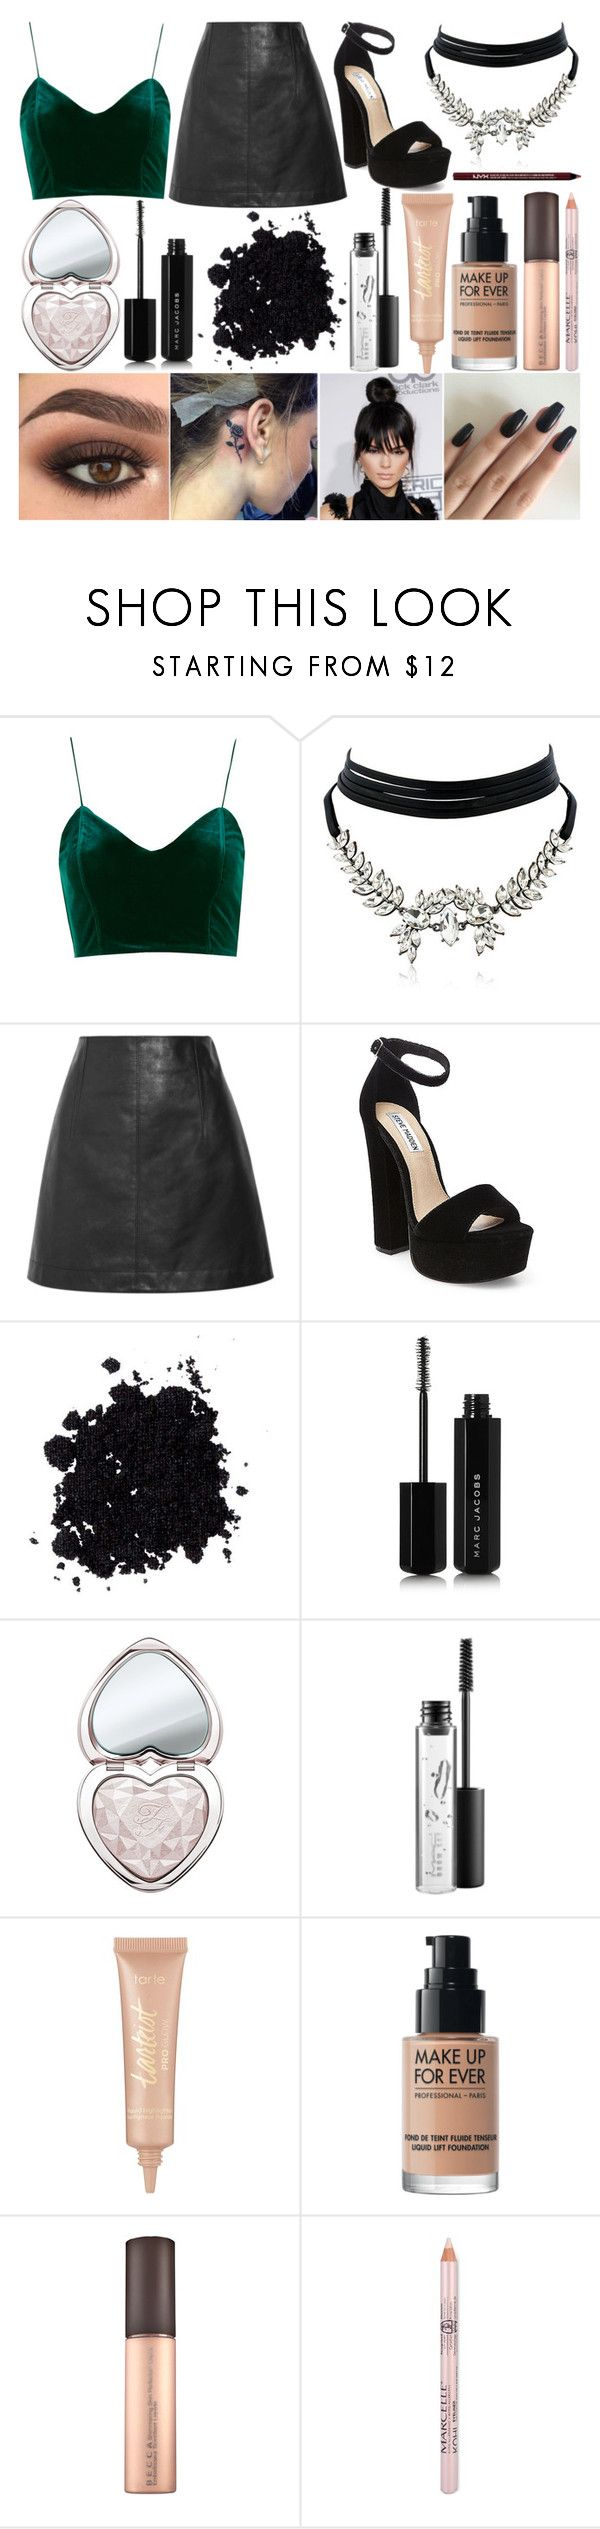 """""""Red Carpet"""" by susanna-trad on Polyvore featuring WithChic, Chloé, Steve Madden, Marc Jacobs, Too Faced Cosmetics, MAC Cosmetics, tarte, MAKE UP FOR EVER and Charlotte Russe"""